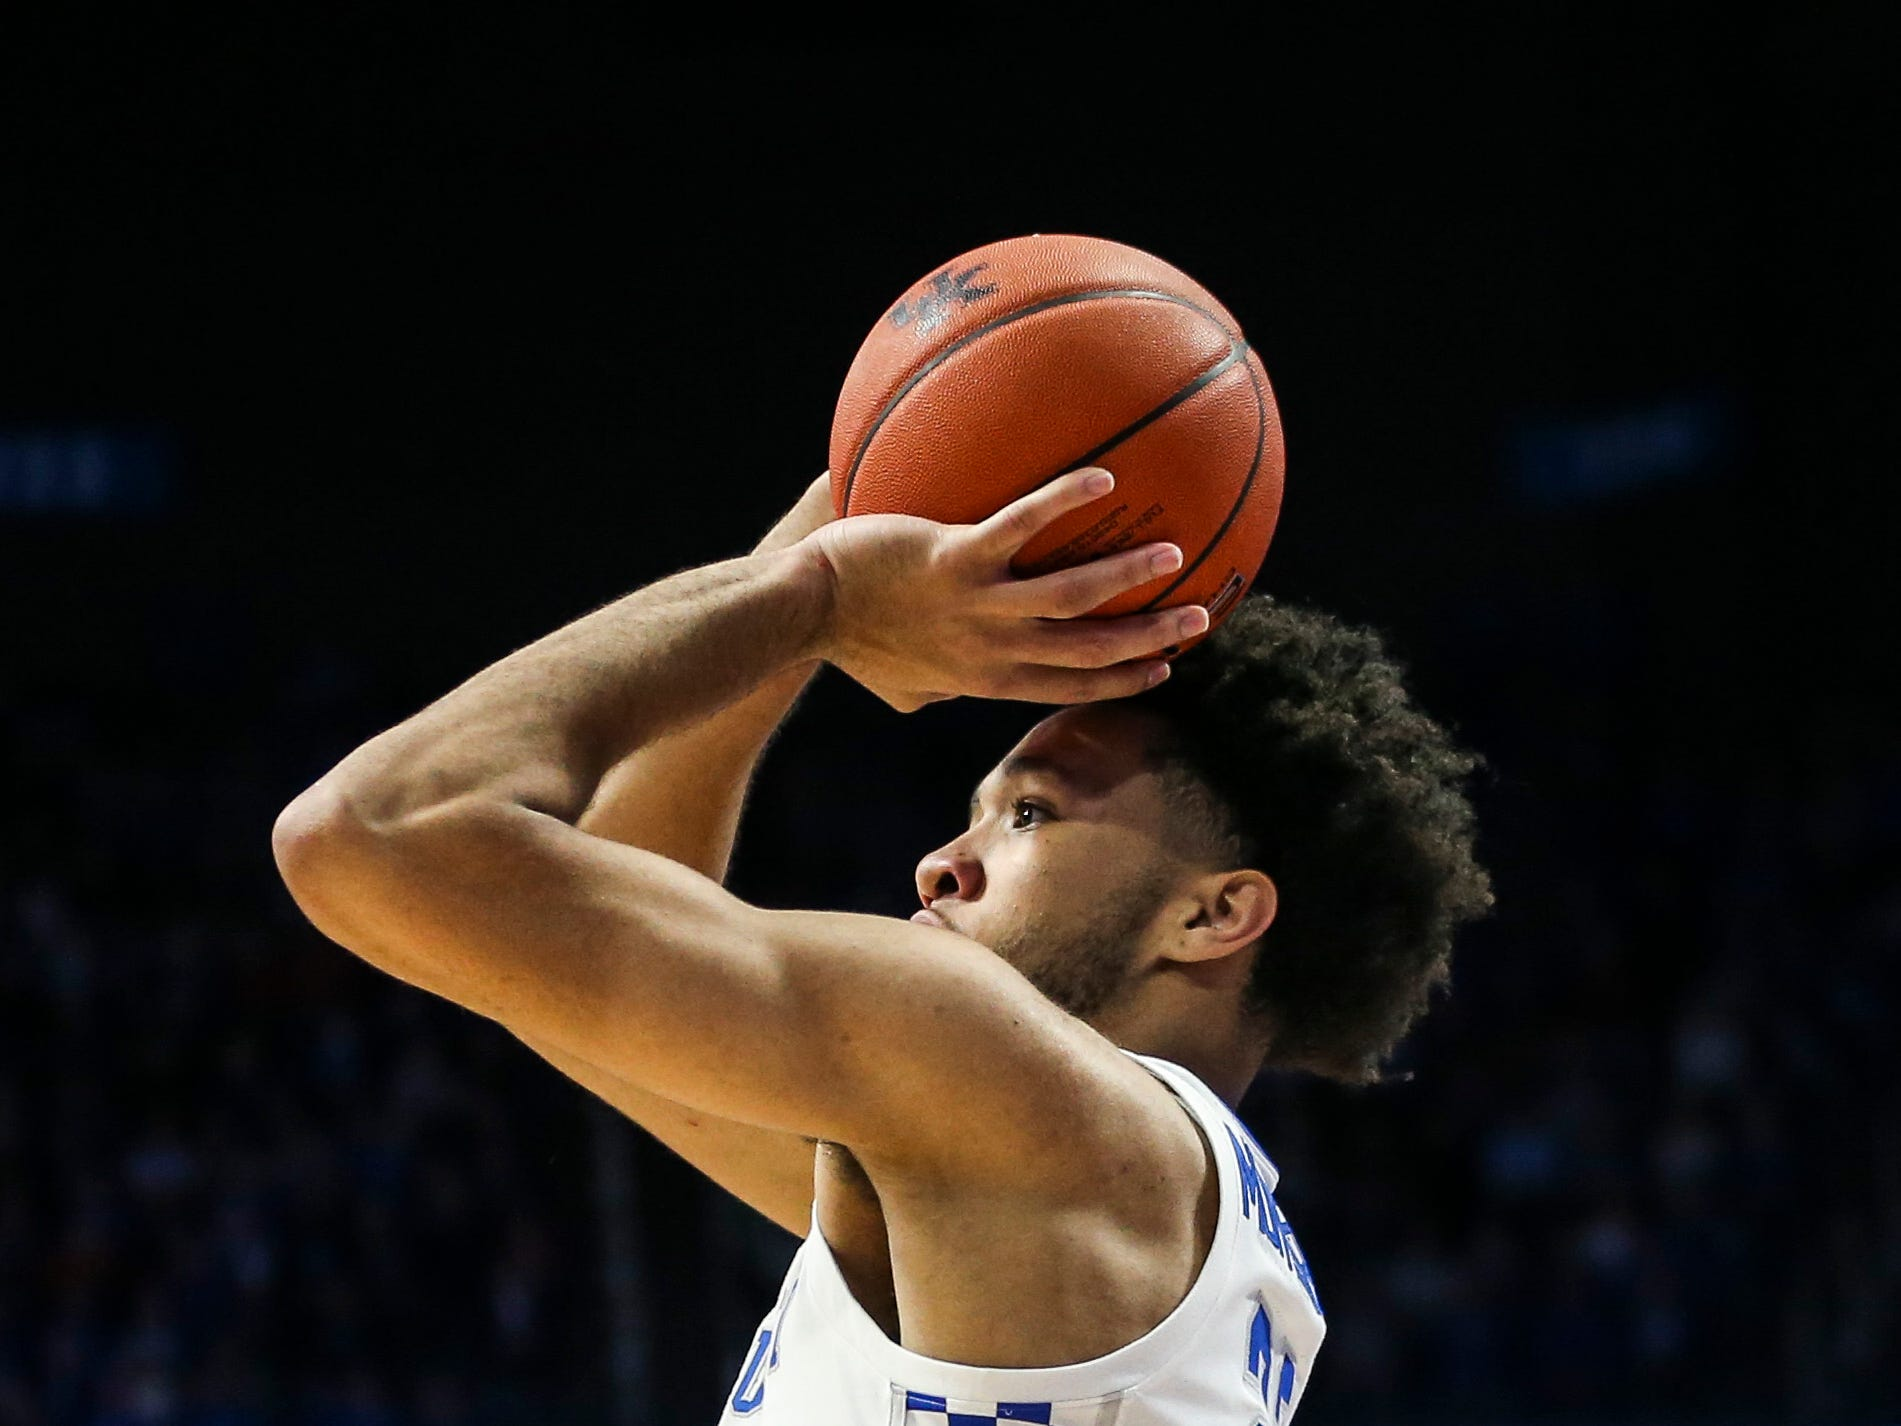 Kentucky's EJ Montgomery hit this three-point shot in the second half against Mississippi State, earning praise from coach John Calipari after the game Tuesday night at Rupp Arena in Lexington. The Wildcats won 76-55.